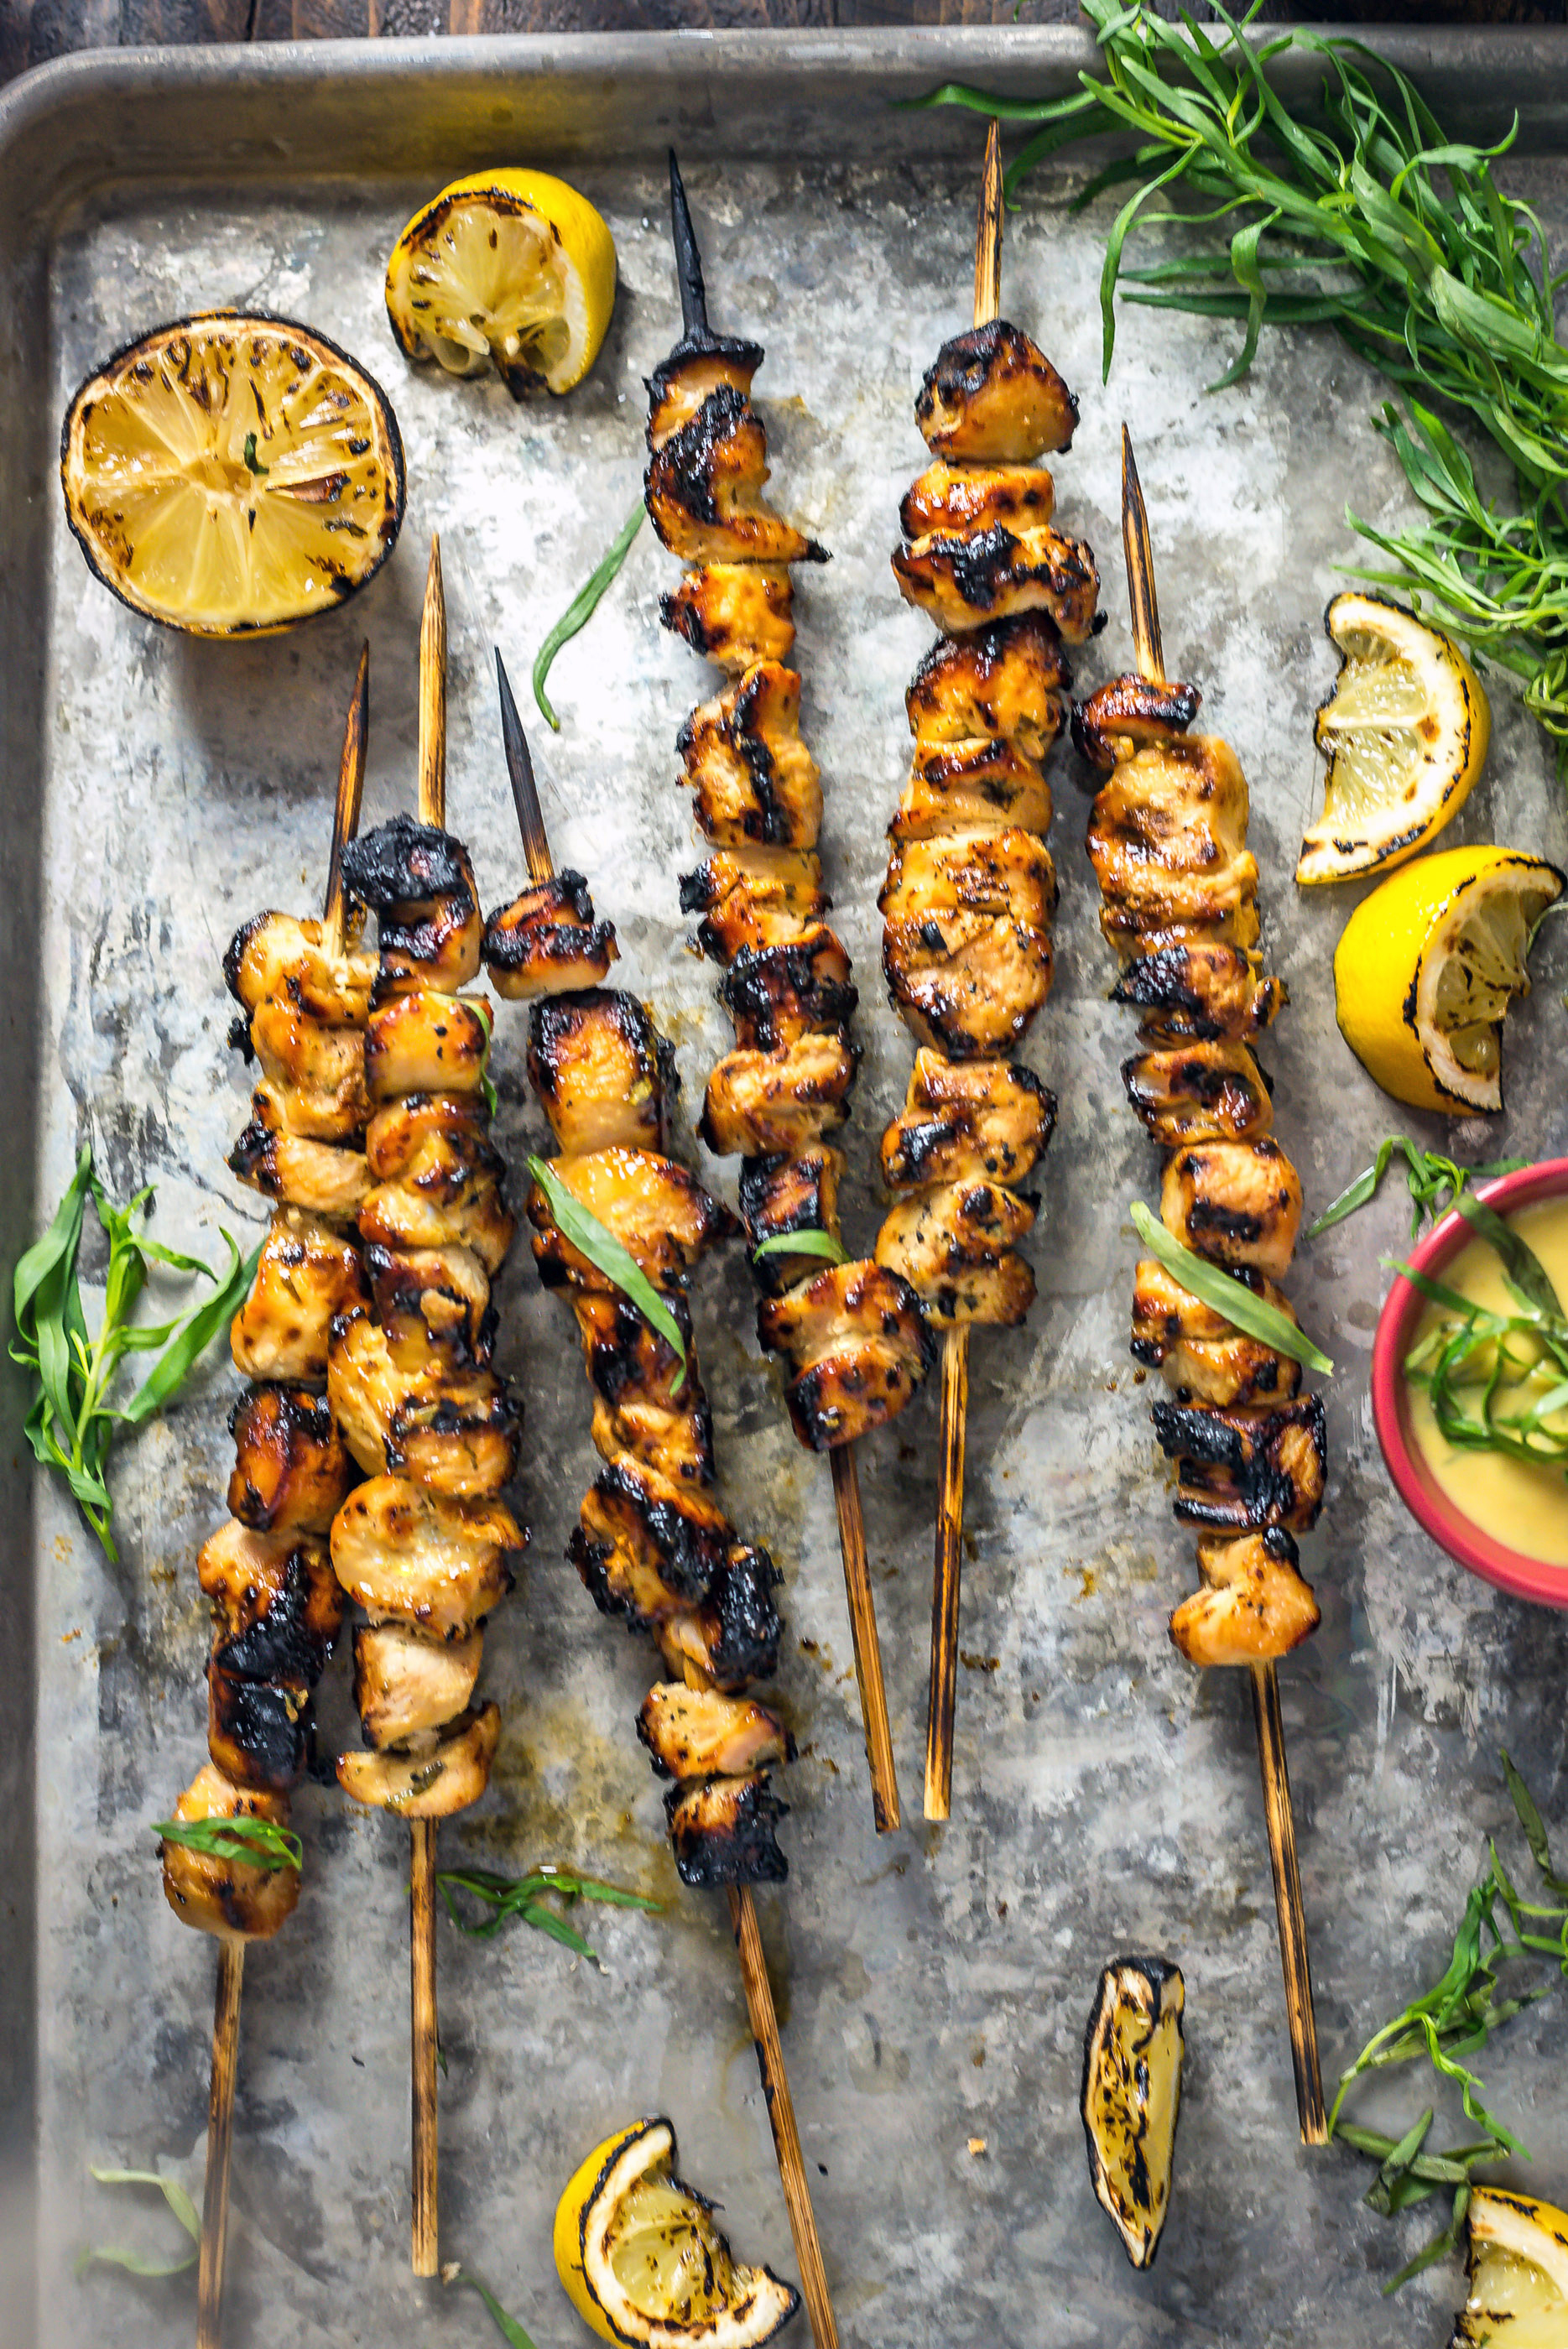 Grilled Tarragon Mustard Chicken Skewers on a baking sheet surrounded by grilled lemons.